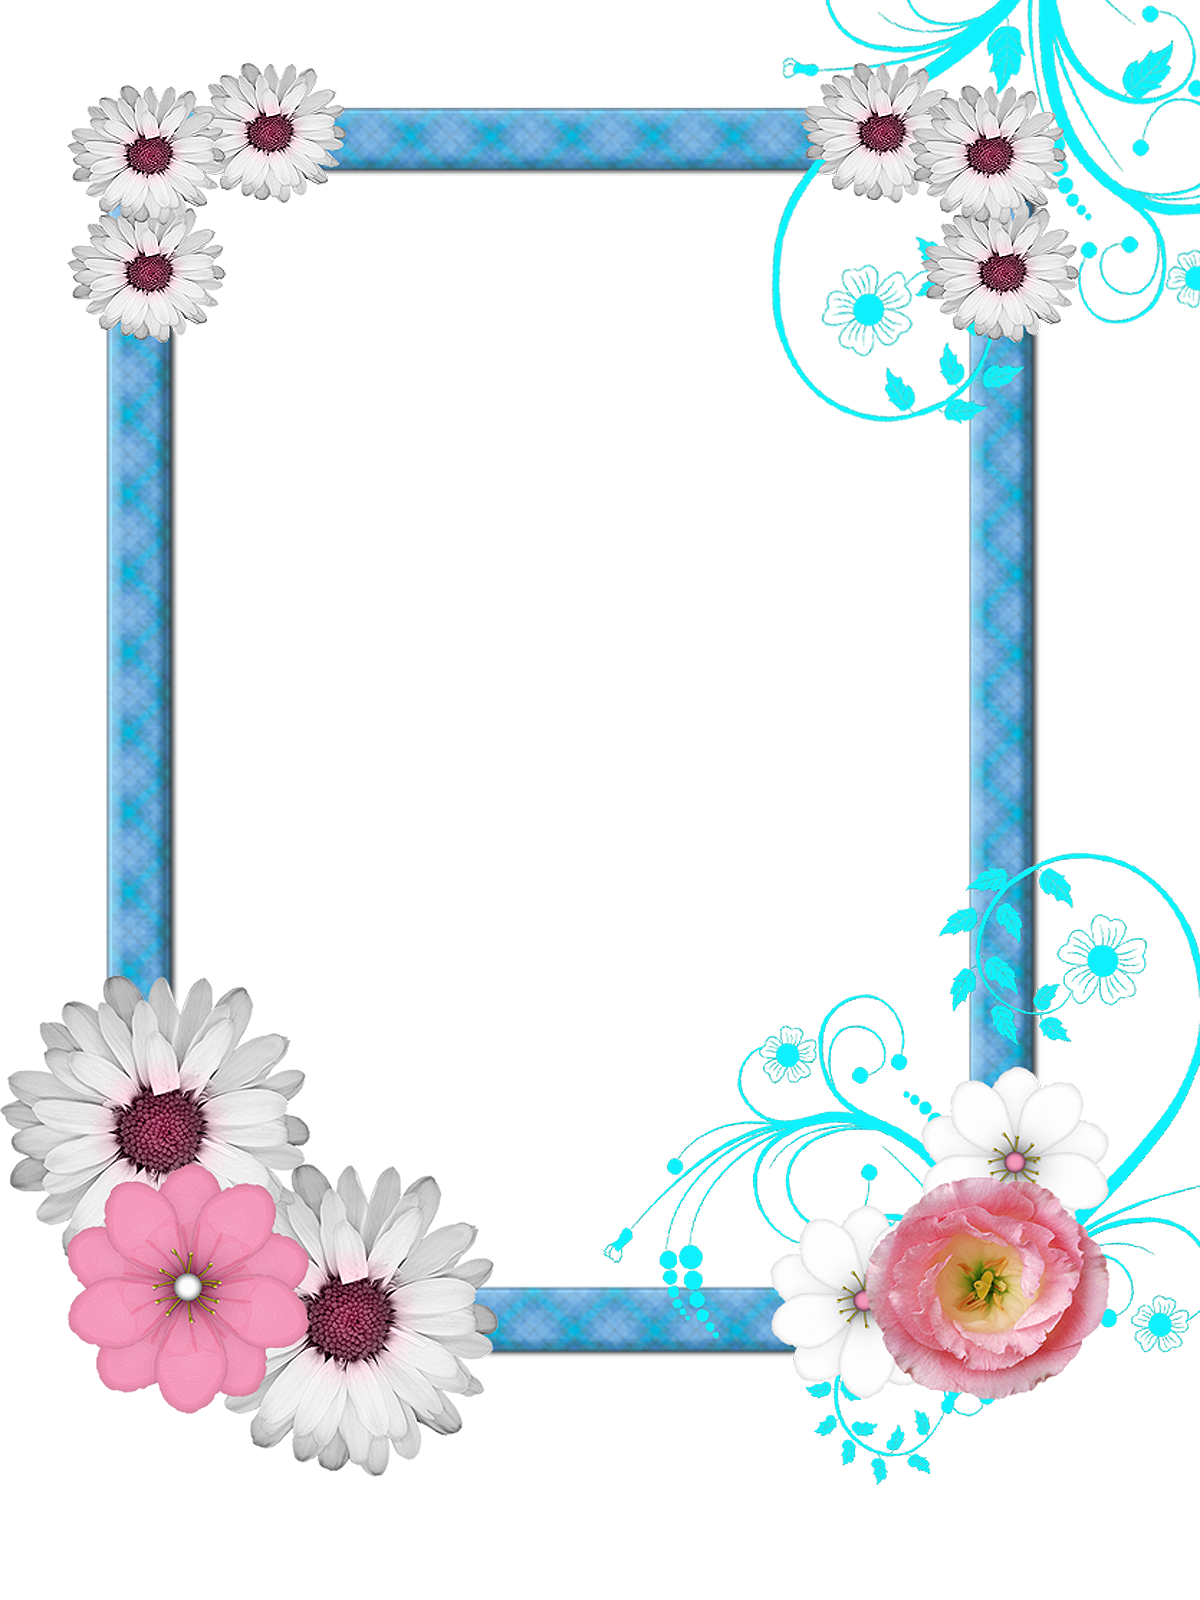 PNG Frame with flowers on a transparent background 1200 x